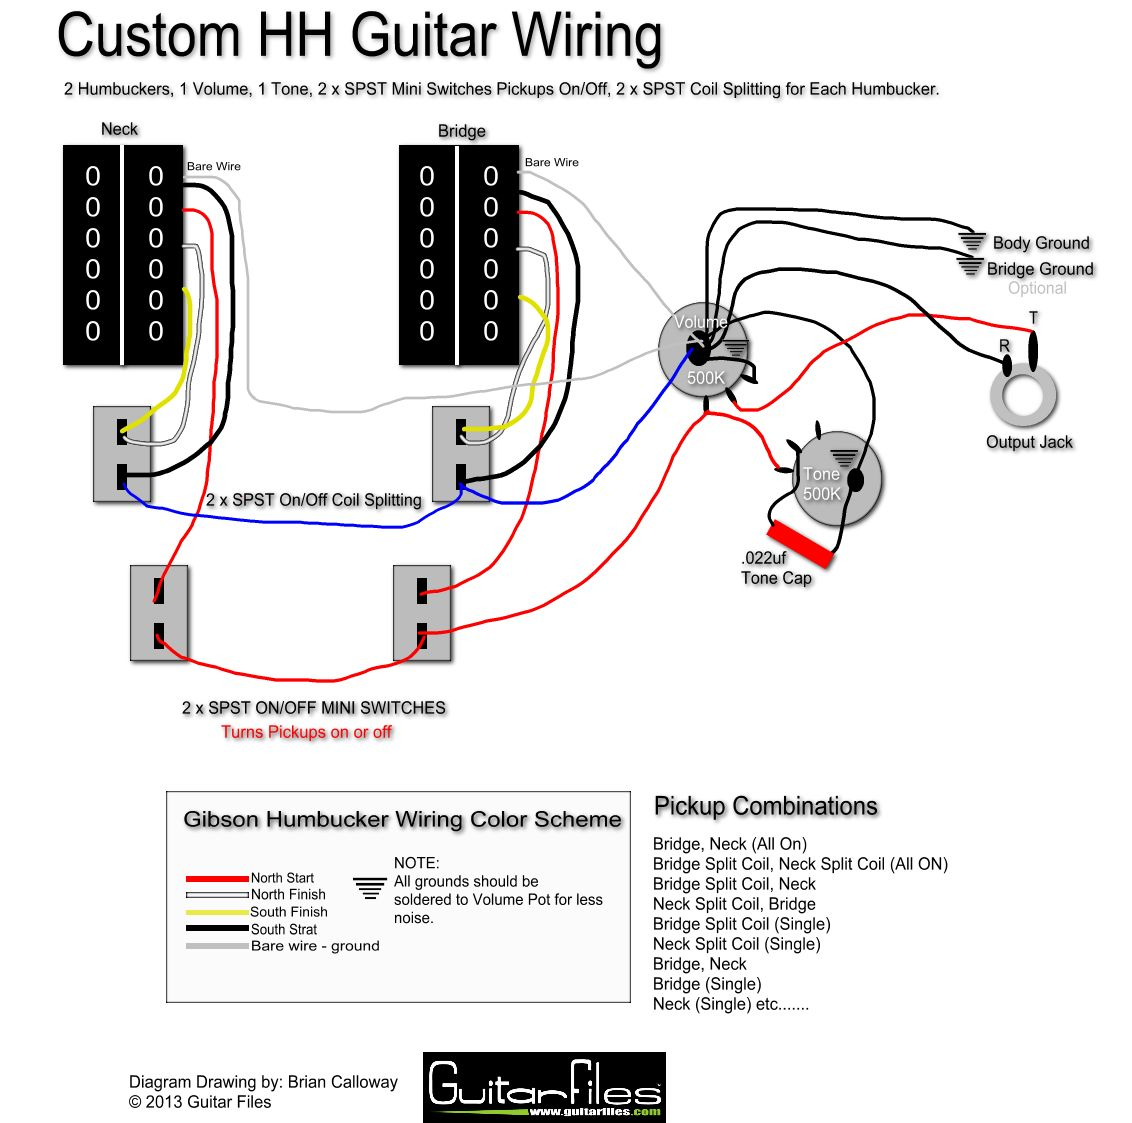 Custom Hh Wiring Diagram With Spst Coil Splitting And Switching Prs 24 Guitar Pickups Building